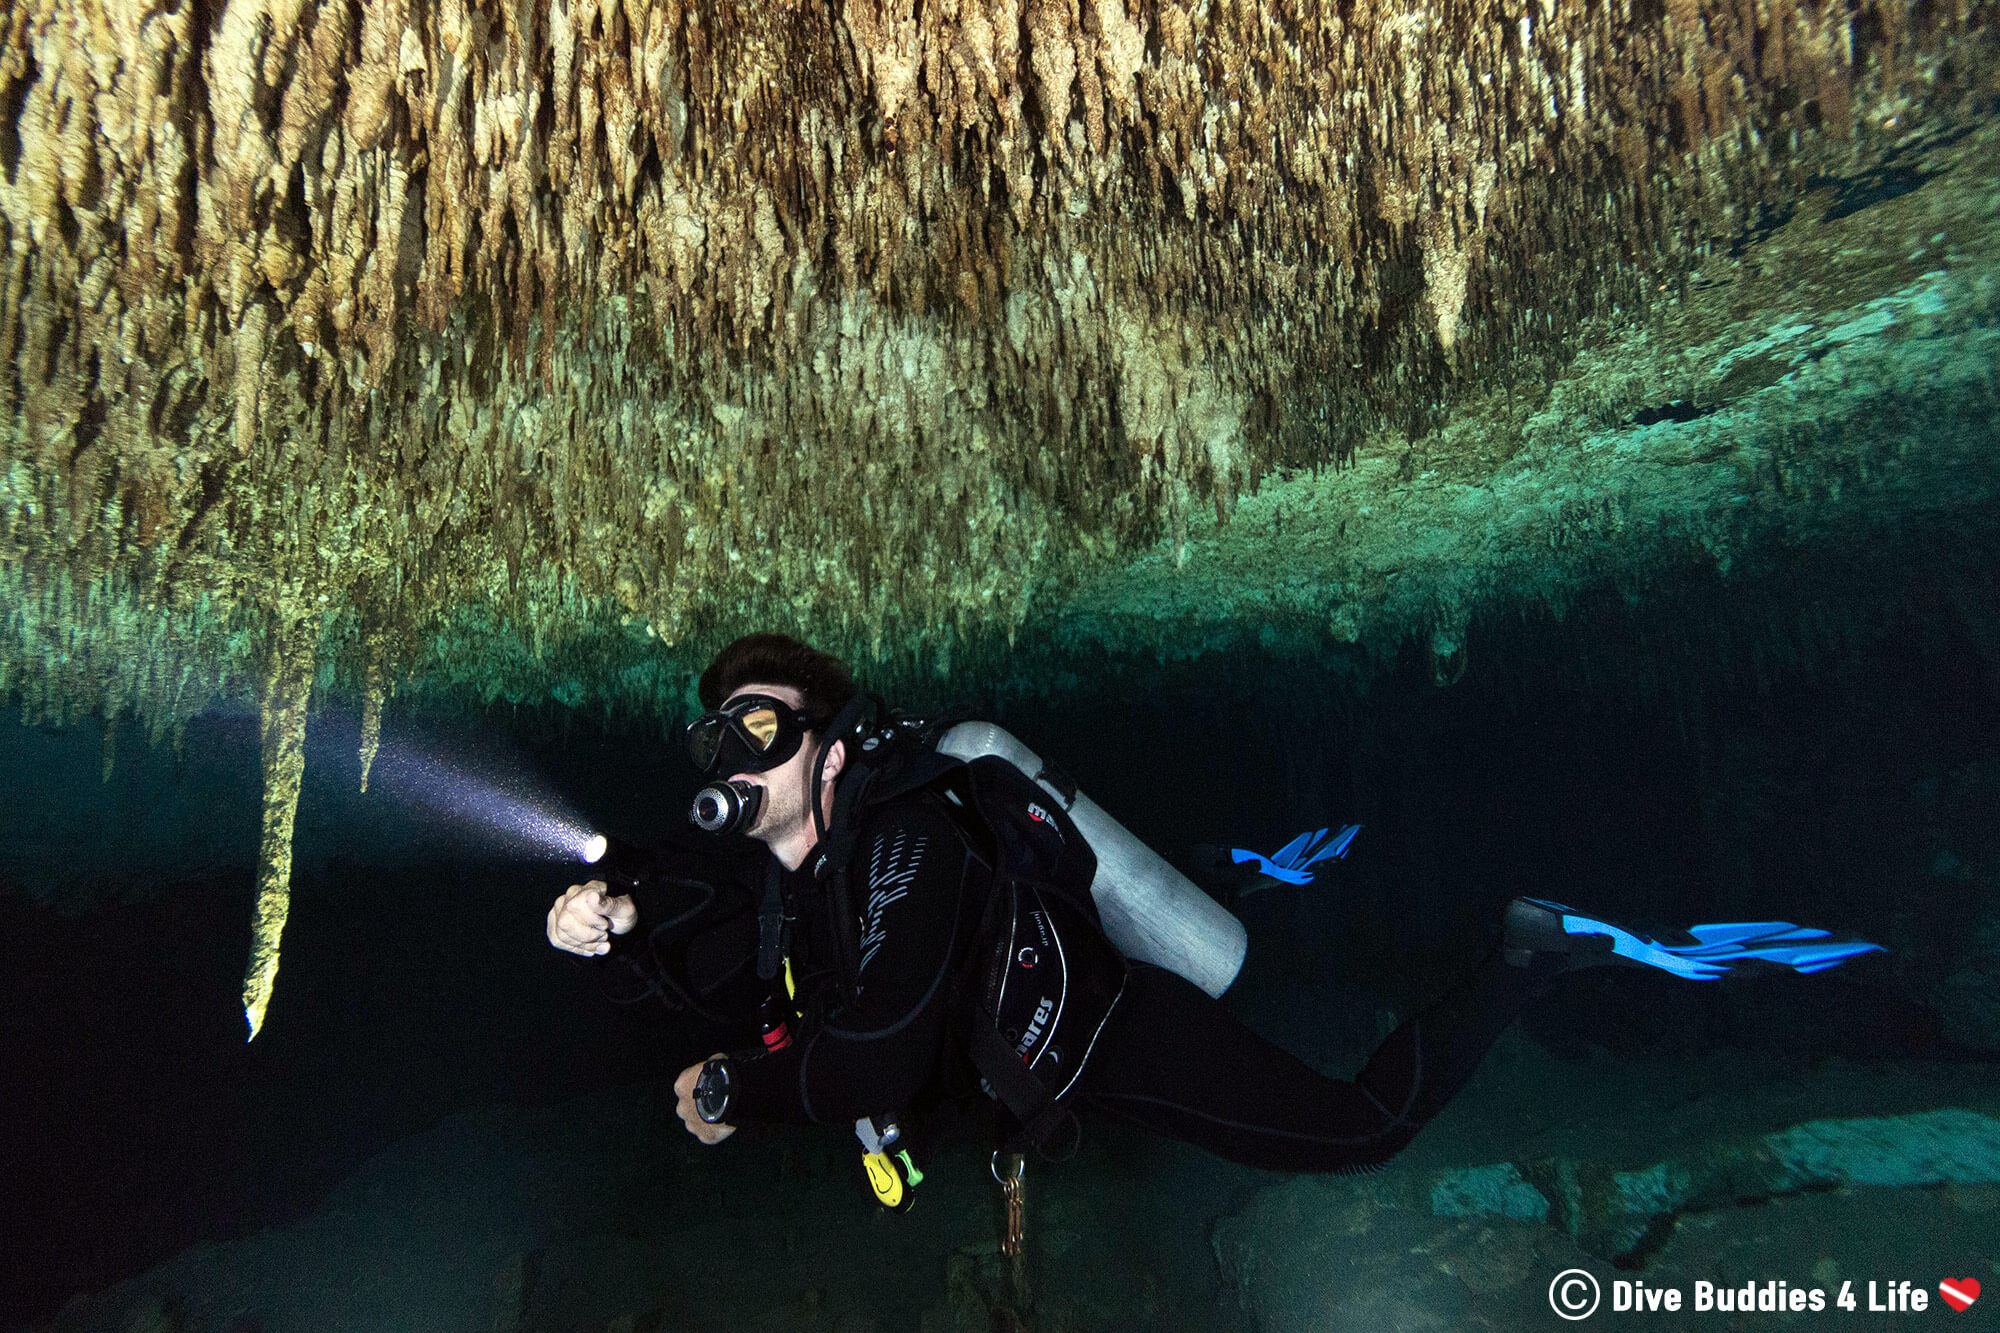 Scuba Diver Joey Flashing His Light On The Roof Of A Cenote Cave In Tulum, Mexico